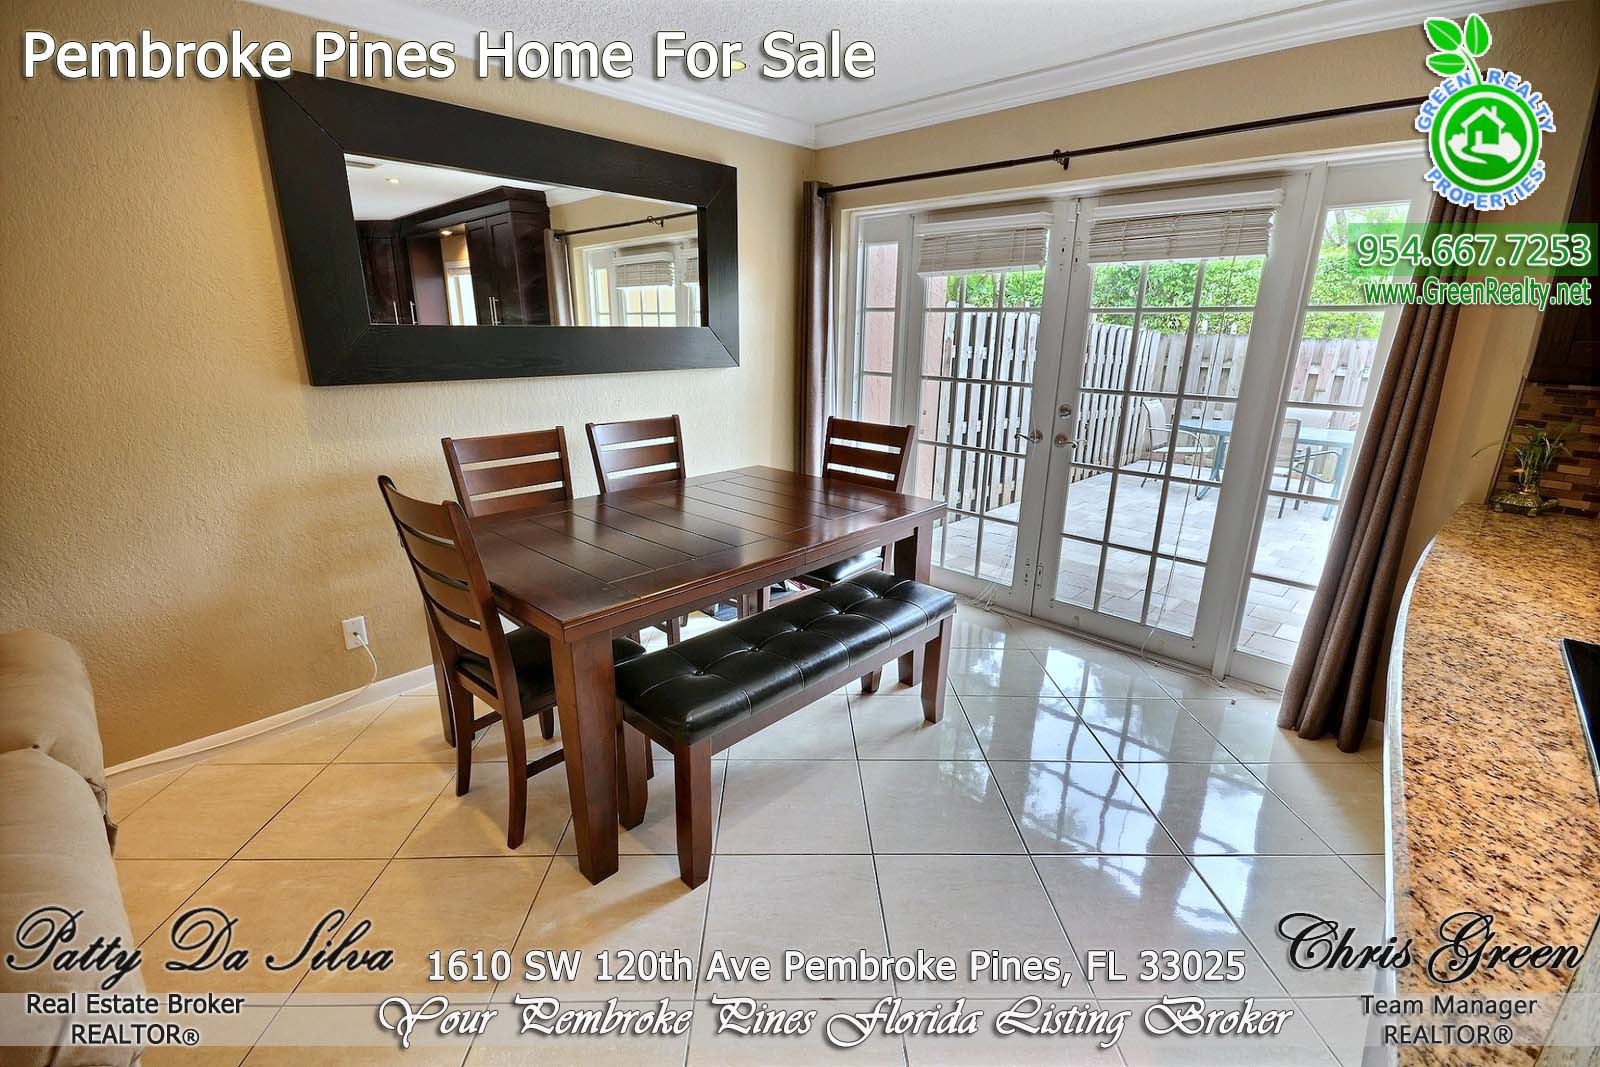 12 Homes For Sale at Las Palmas at Pembroke Pines (4)